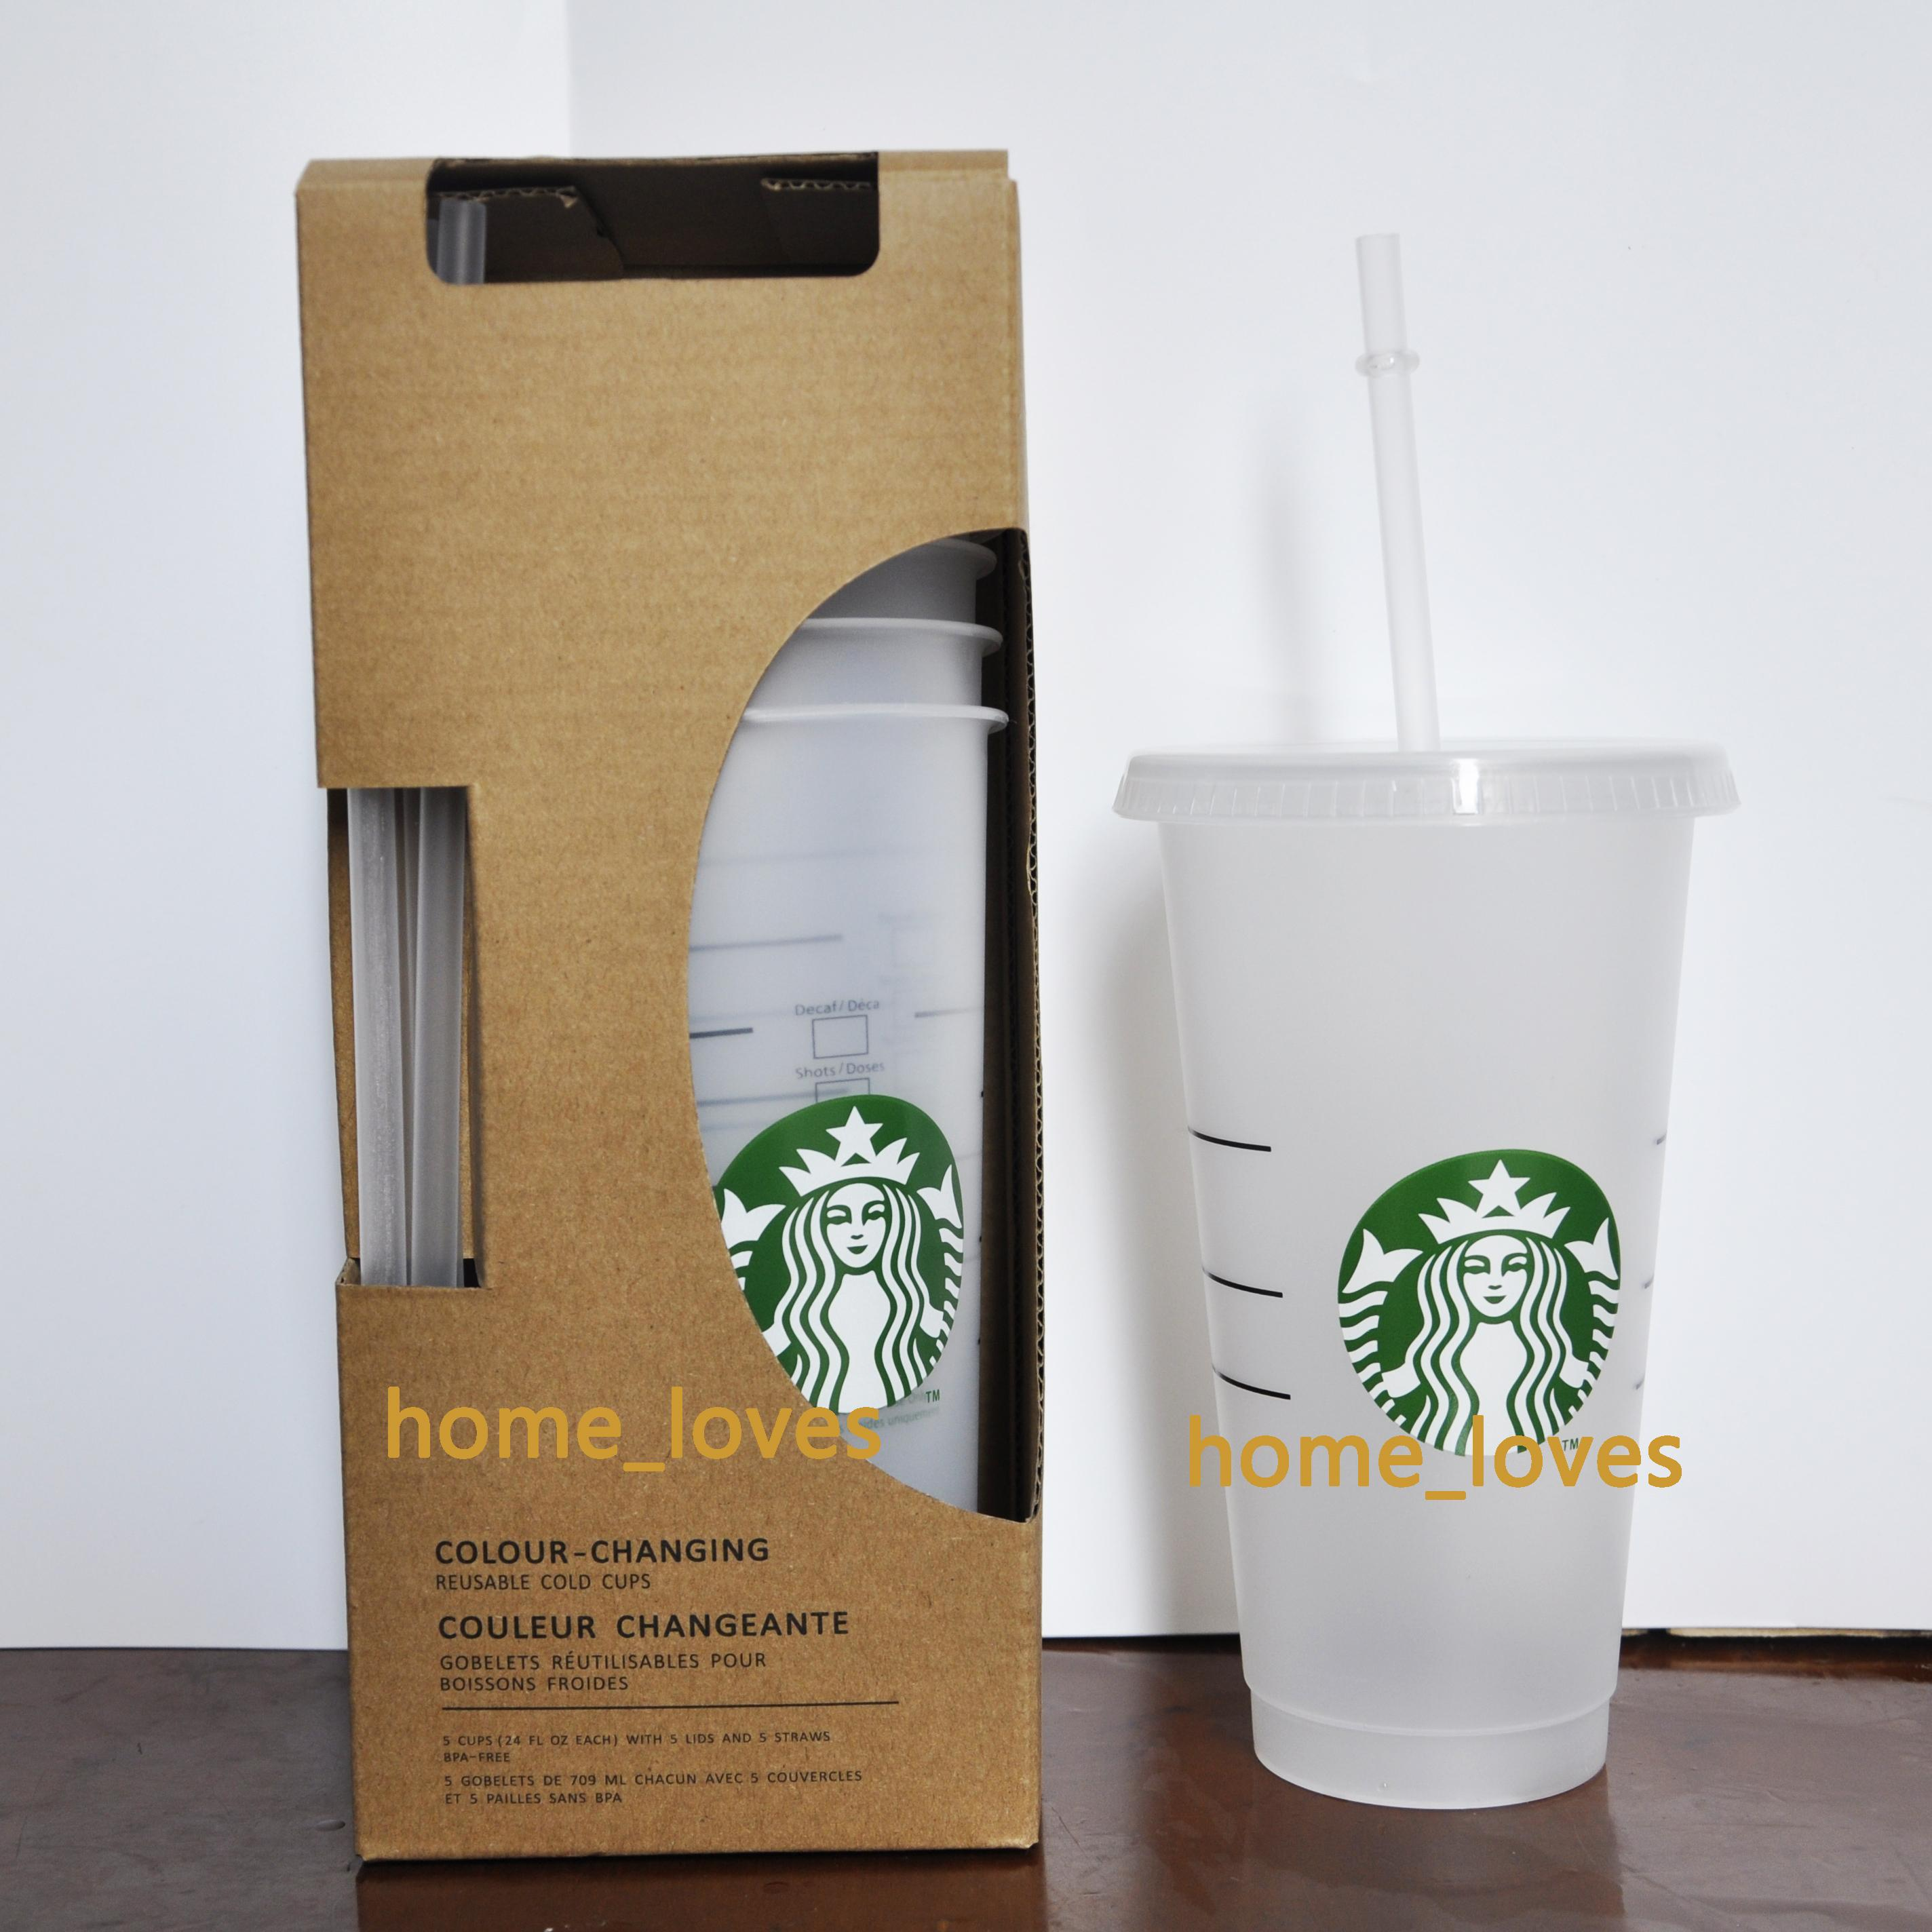 24OZ/710ml Transparent plastic cups Juice cups that do not change color Reusable beverage cup Starbucks cups with lids and straws Coffe